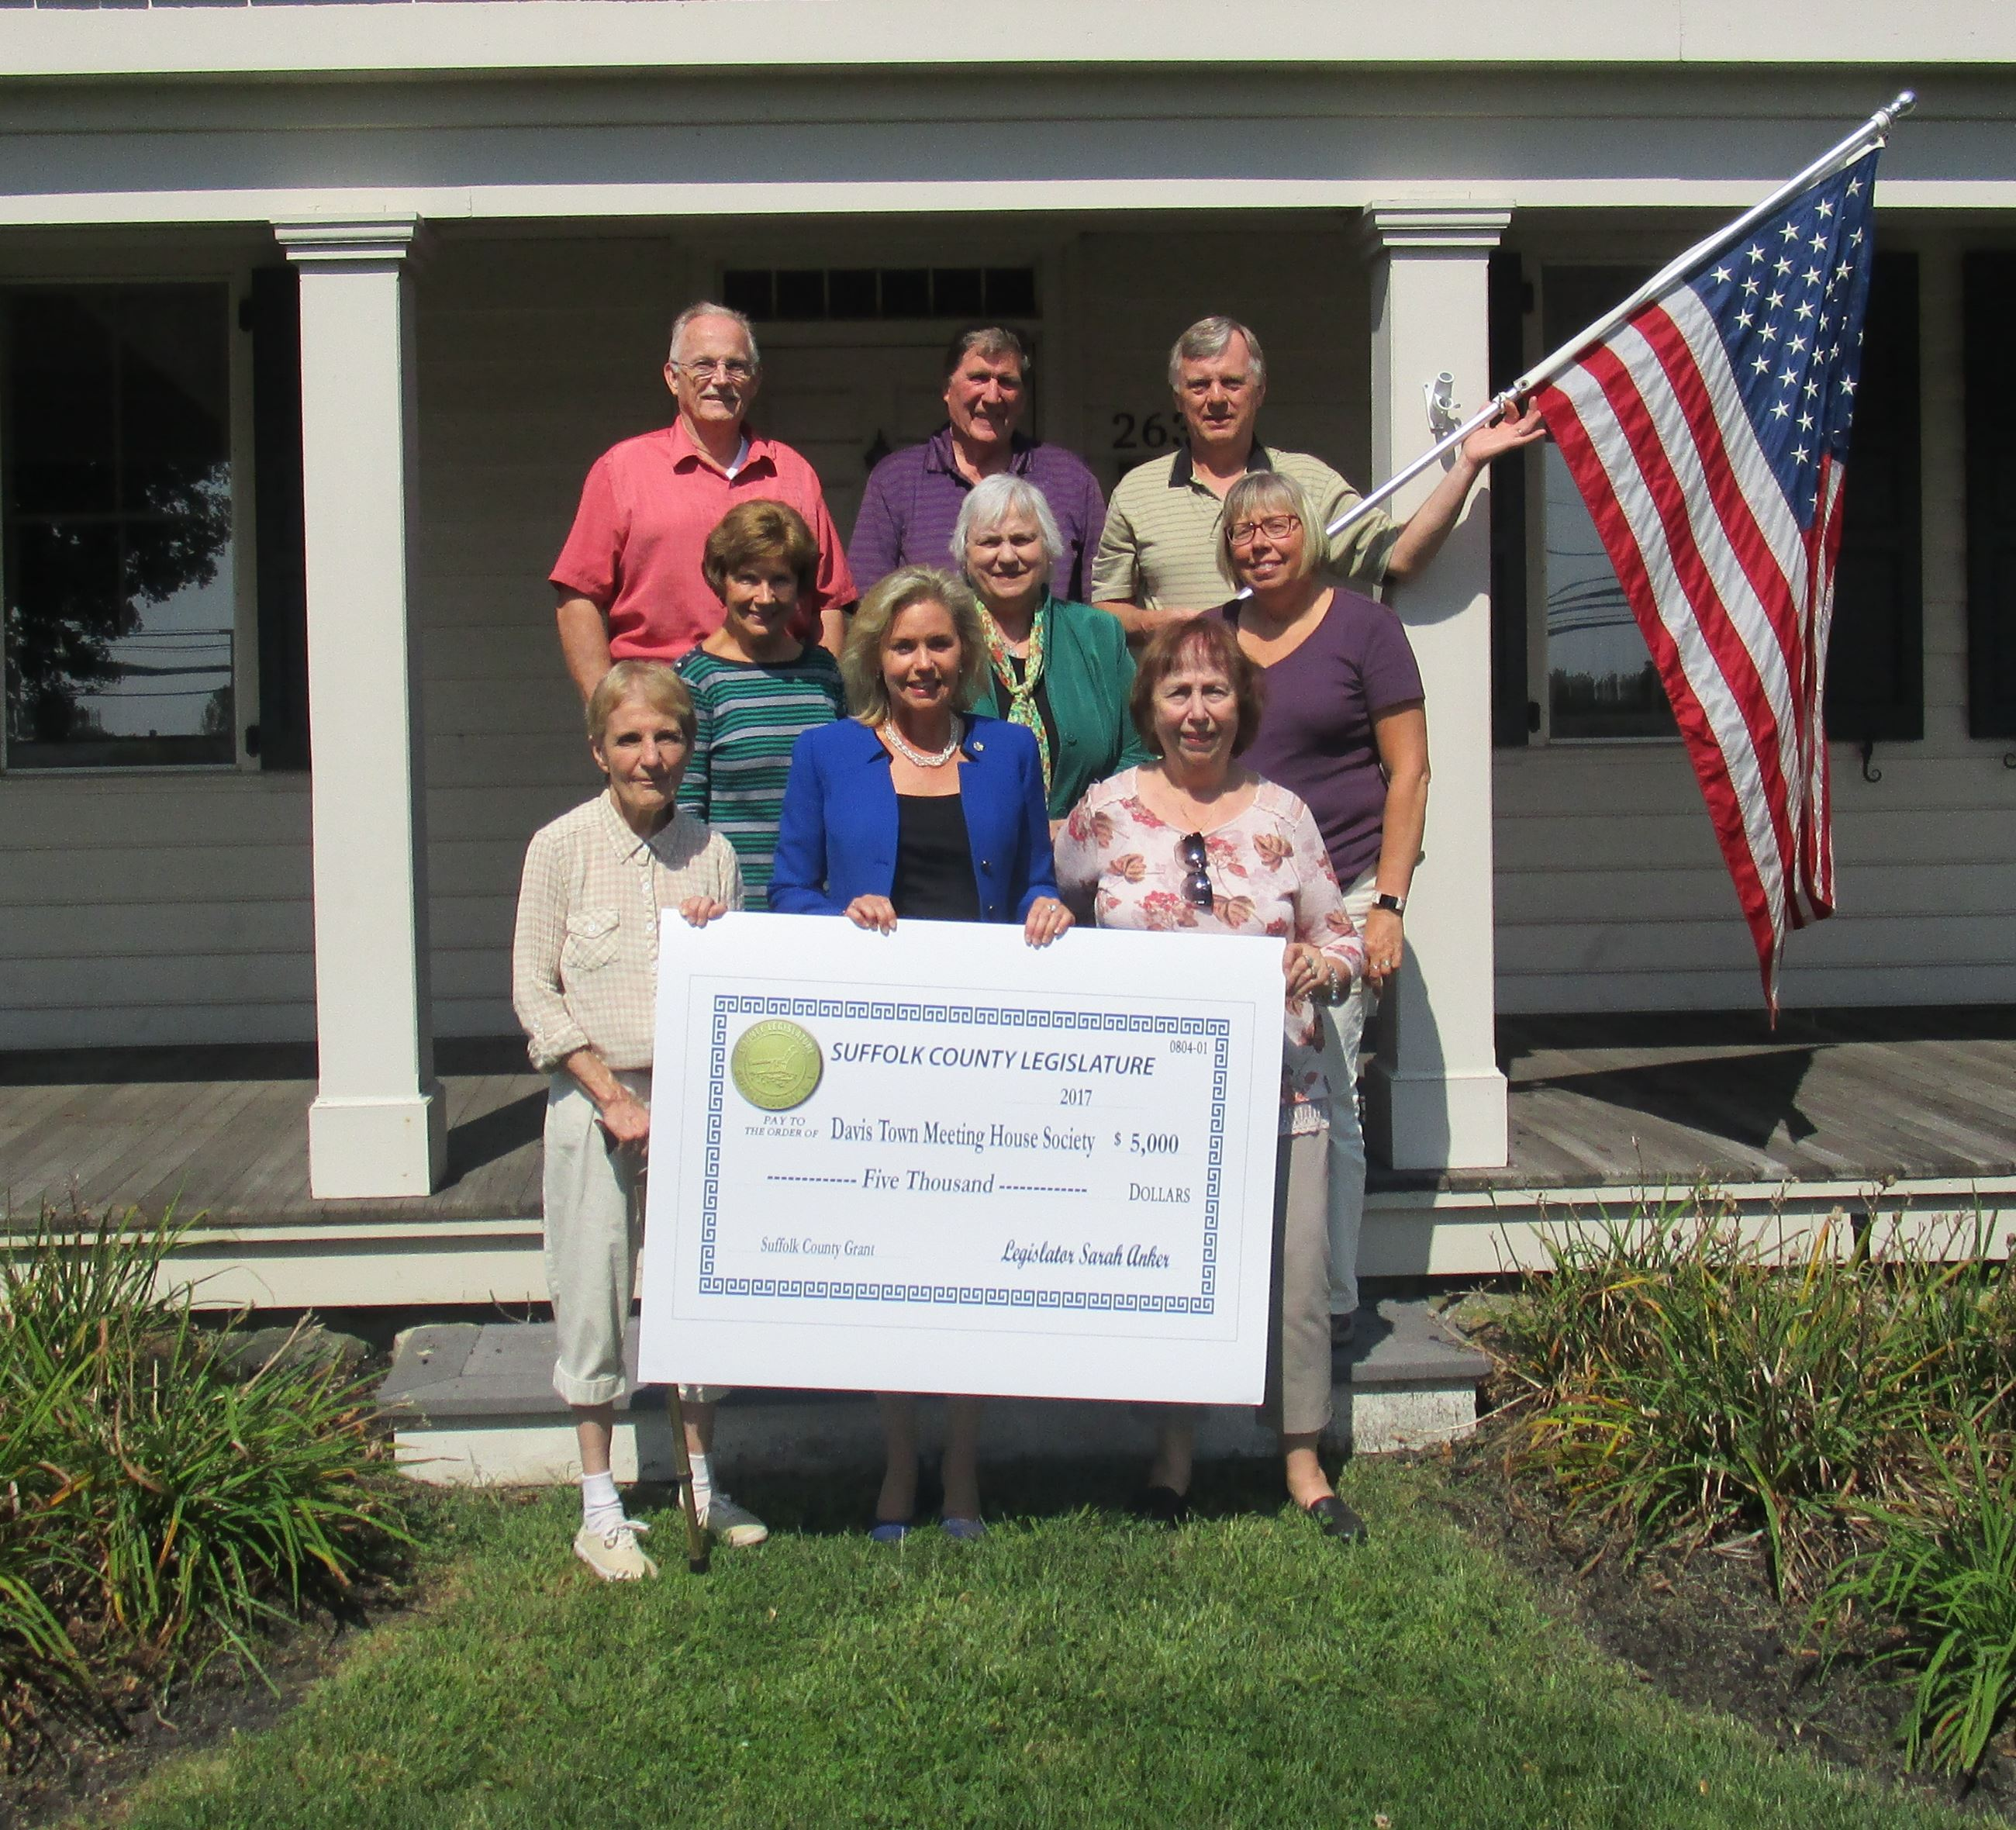 Davis House Society Meeting House Society received grant check from Suffolk County Legislator.